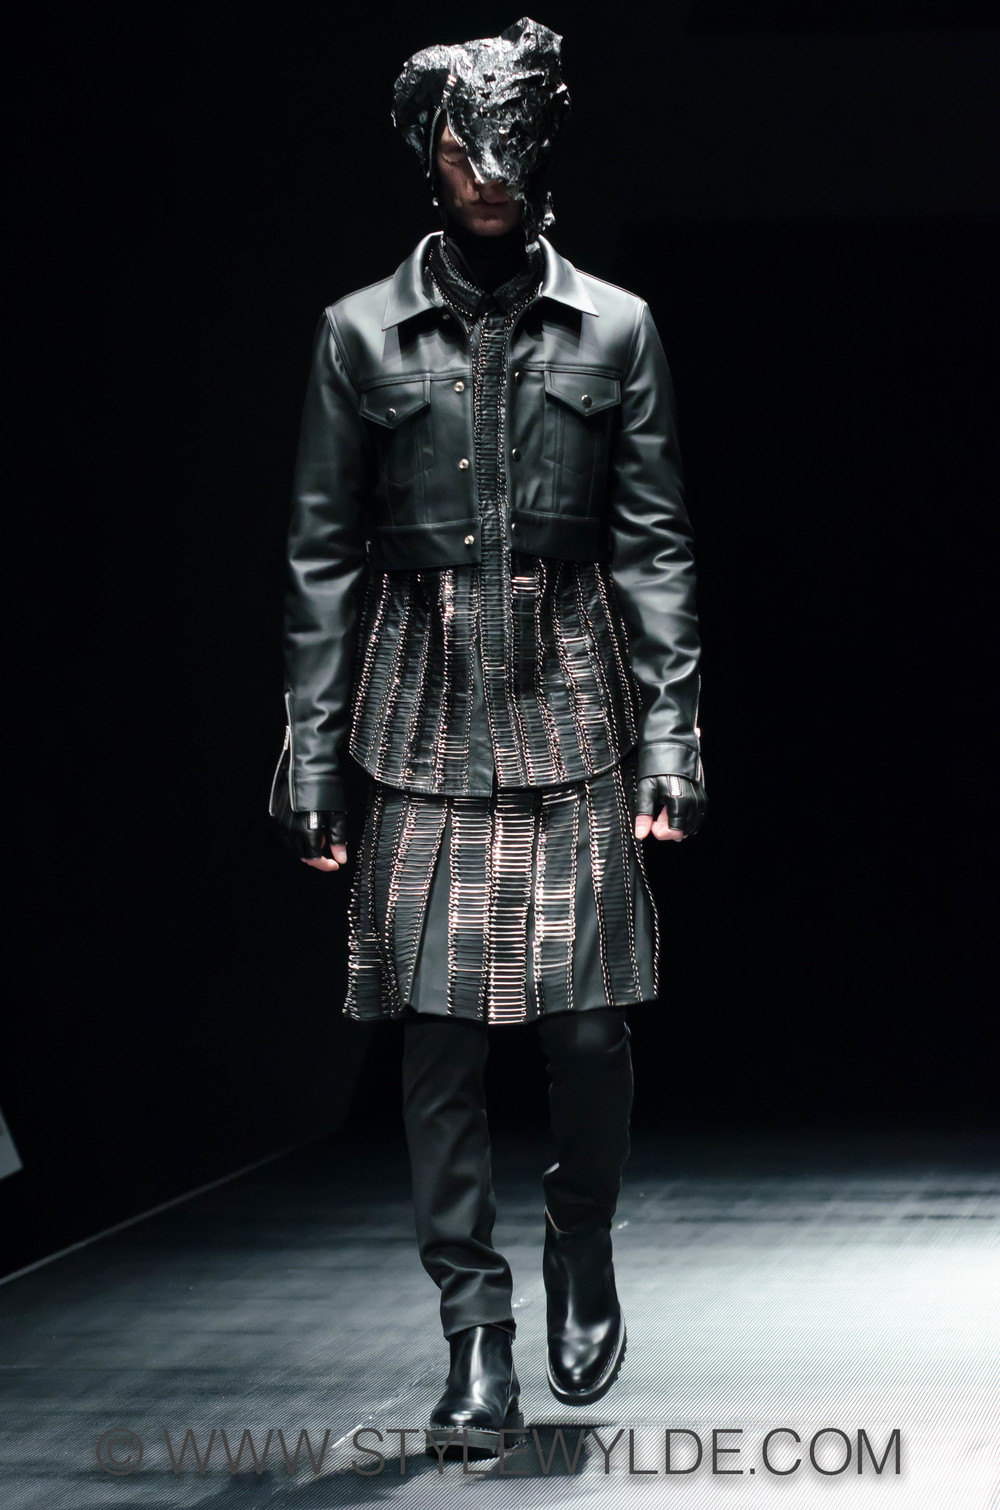 StyleWylde_99percentIS_AW14_edited (1 of 1)-6.jpg